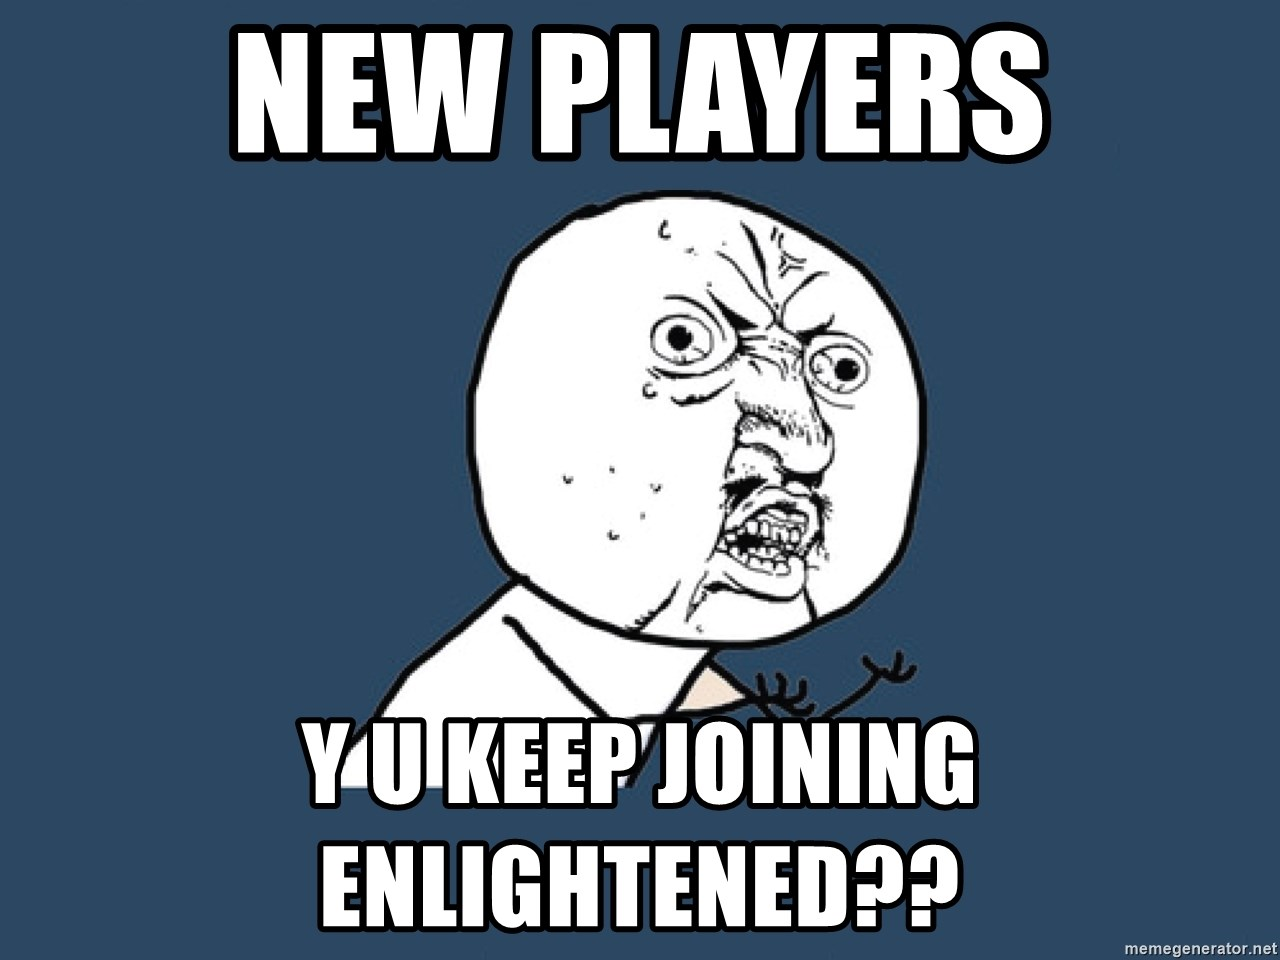 Y U No - New players y u keep joining enlightened??